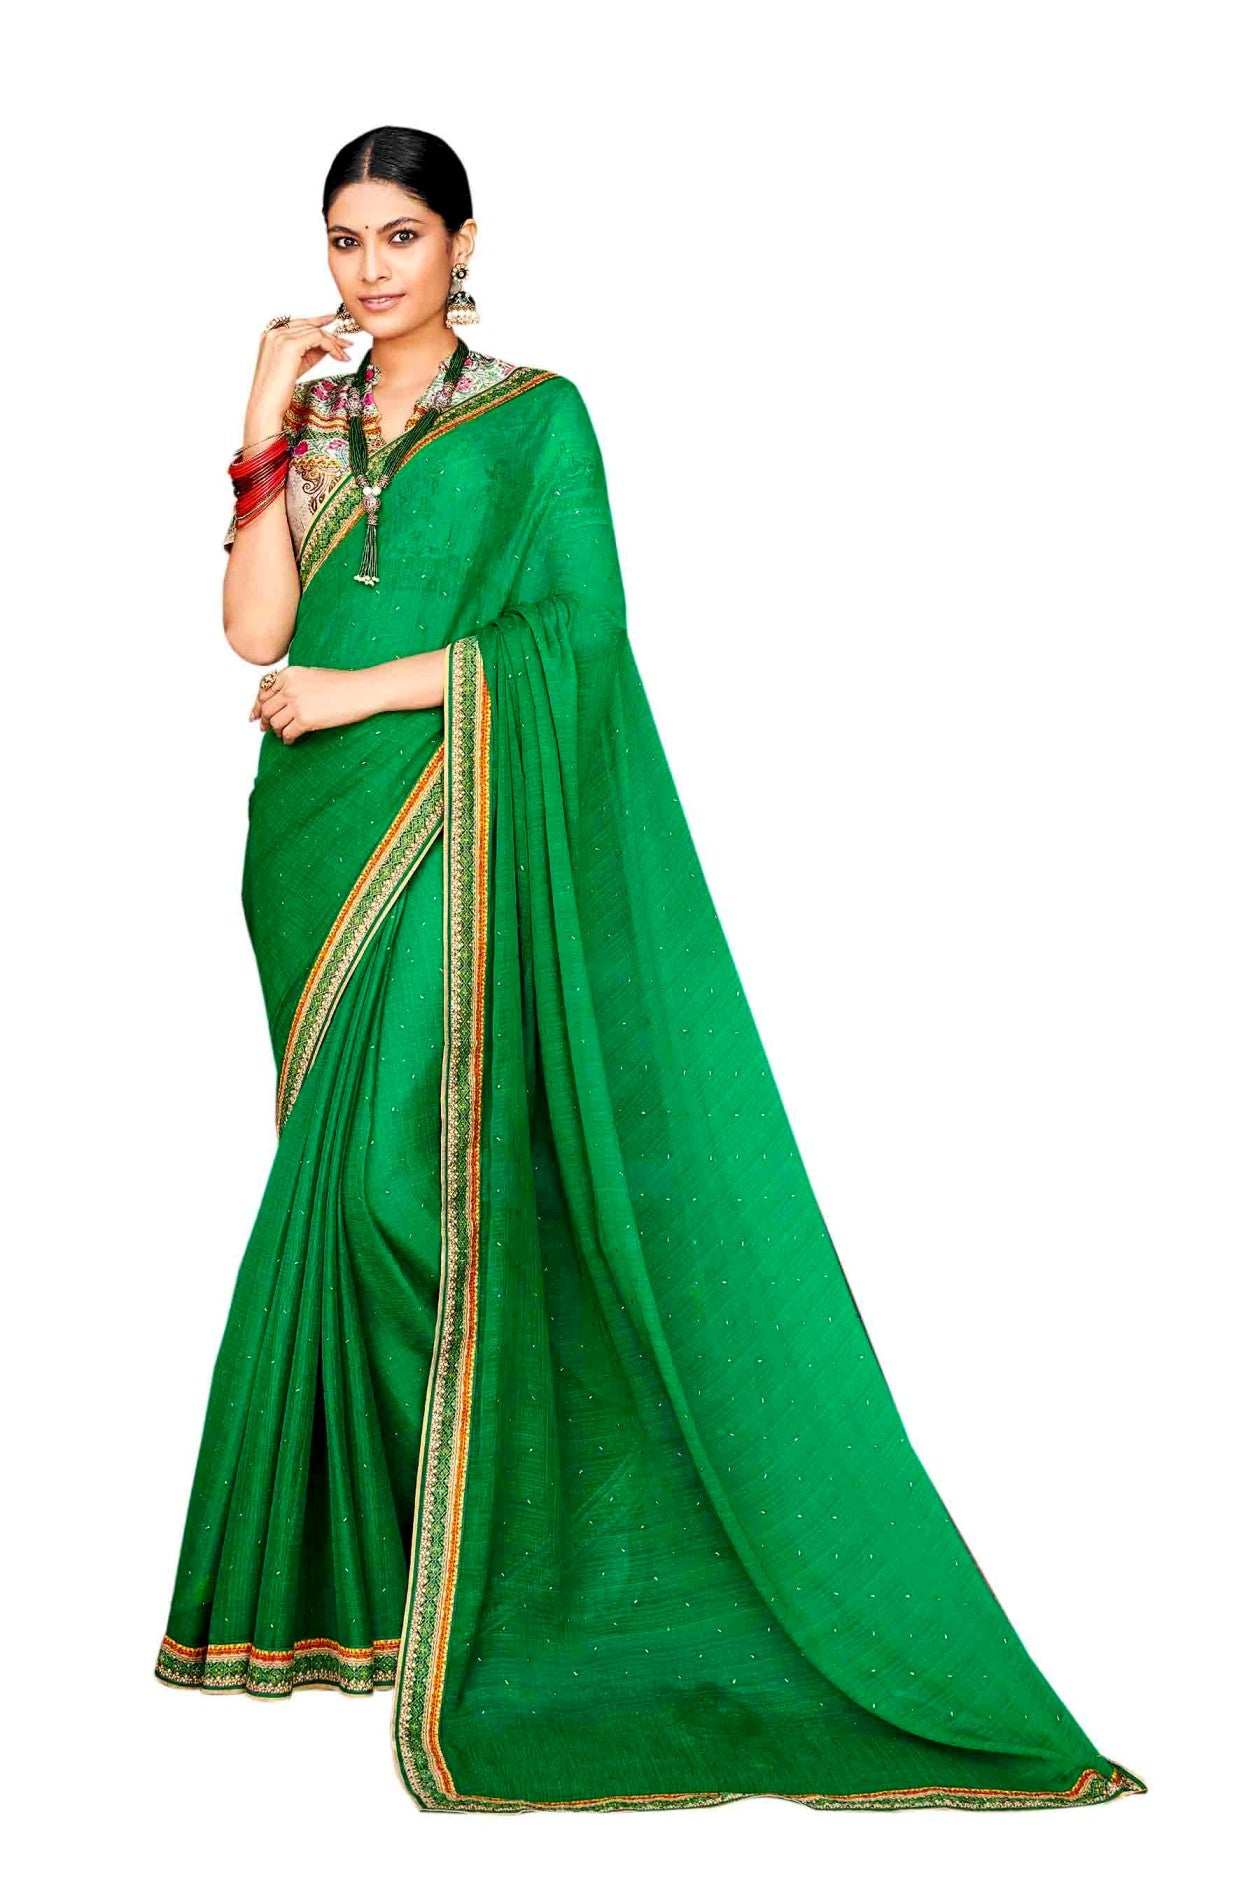 Laxmipati Dhanak Printed Chiffon  Saree (Green) By Indians Boutique